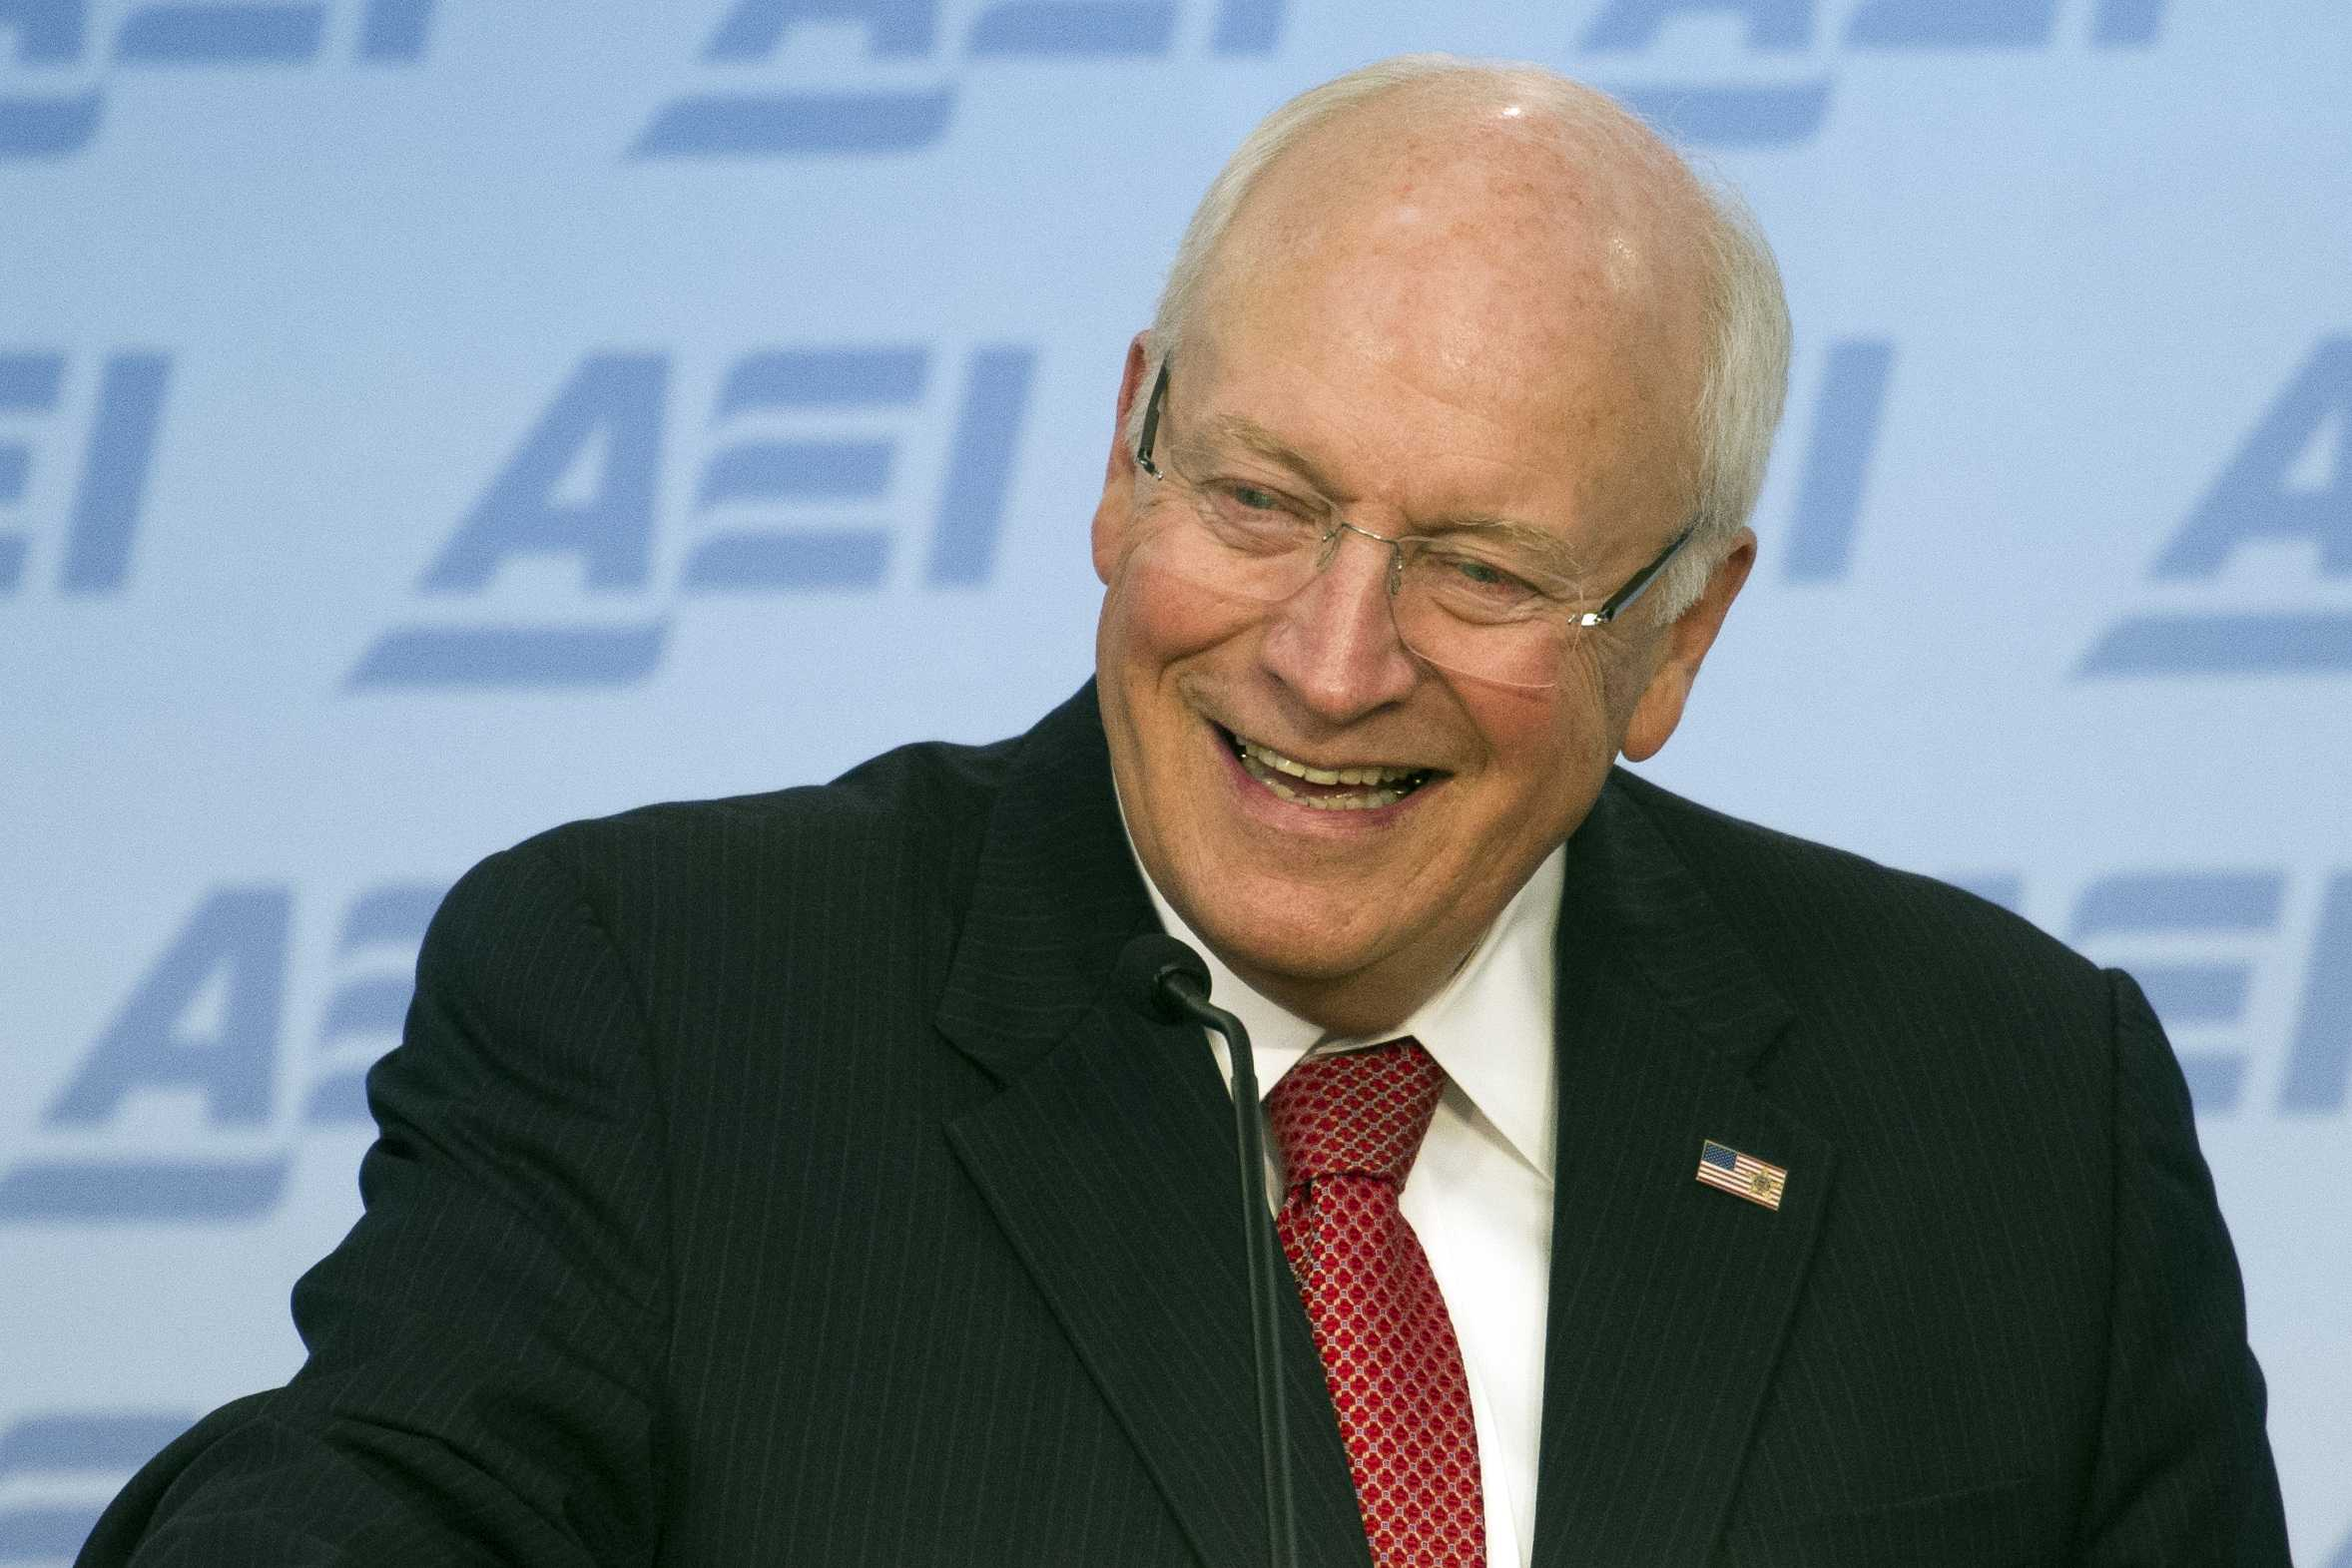 Adam McKay to direct Dick Cheney film for Paramount